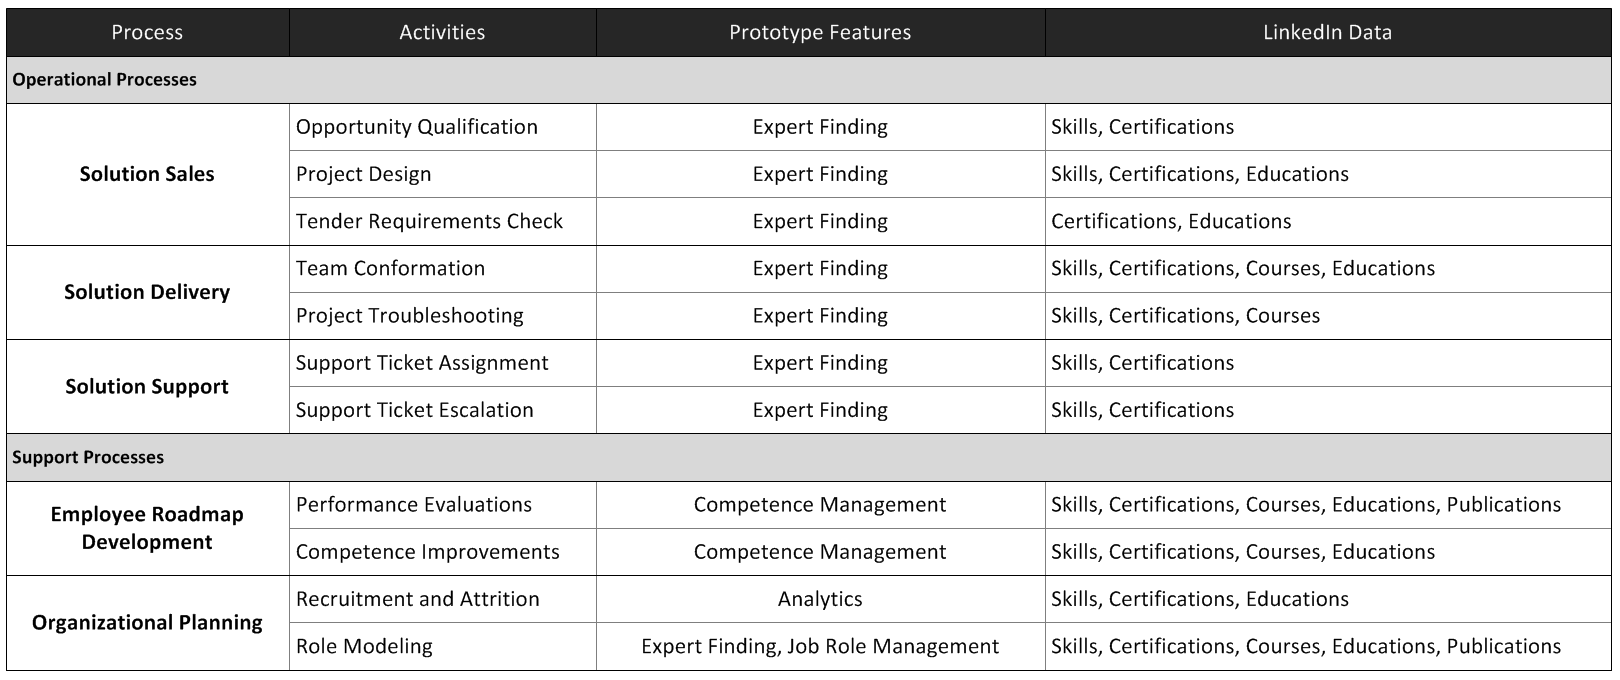 73 Table No. 3: Prototype Impact Table The support processes considered applying LinkedIn data to provide visibility of new achievements employees may have gained.